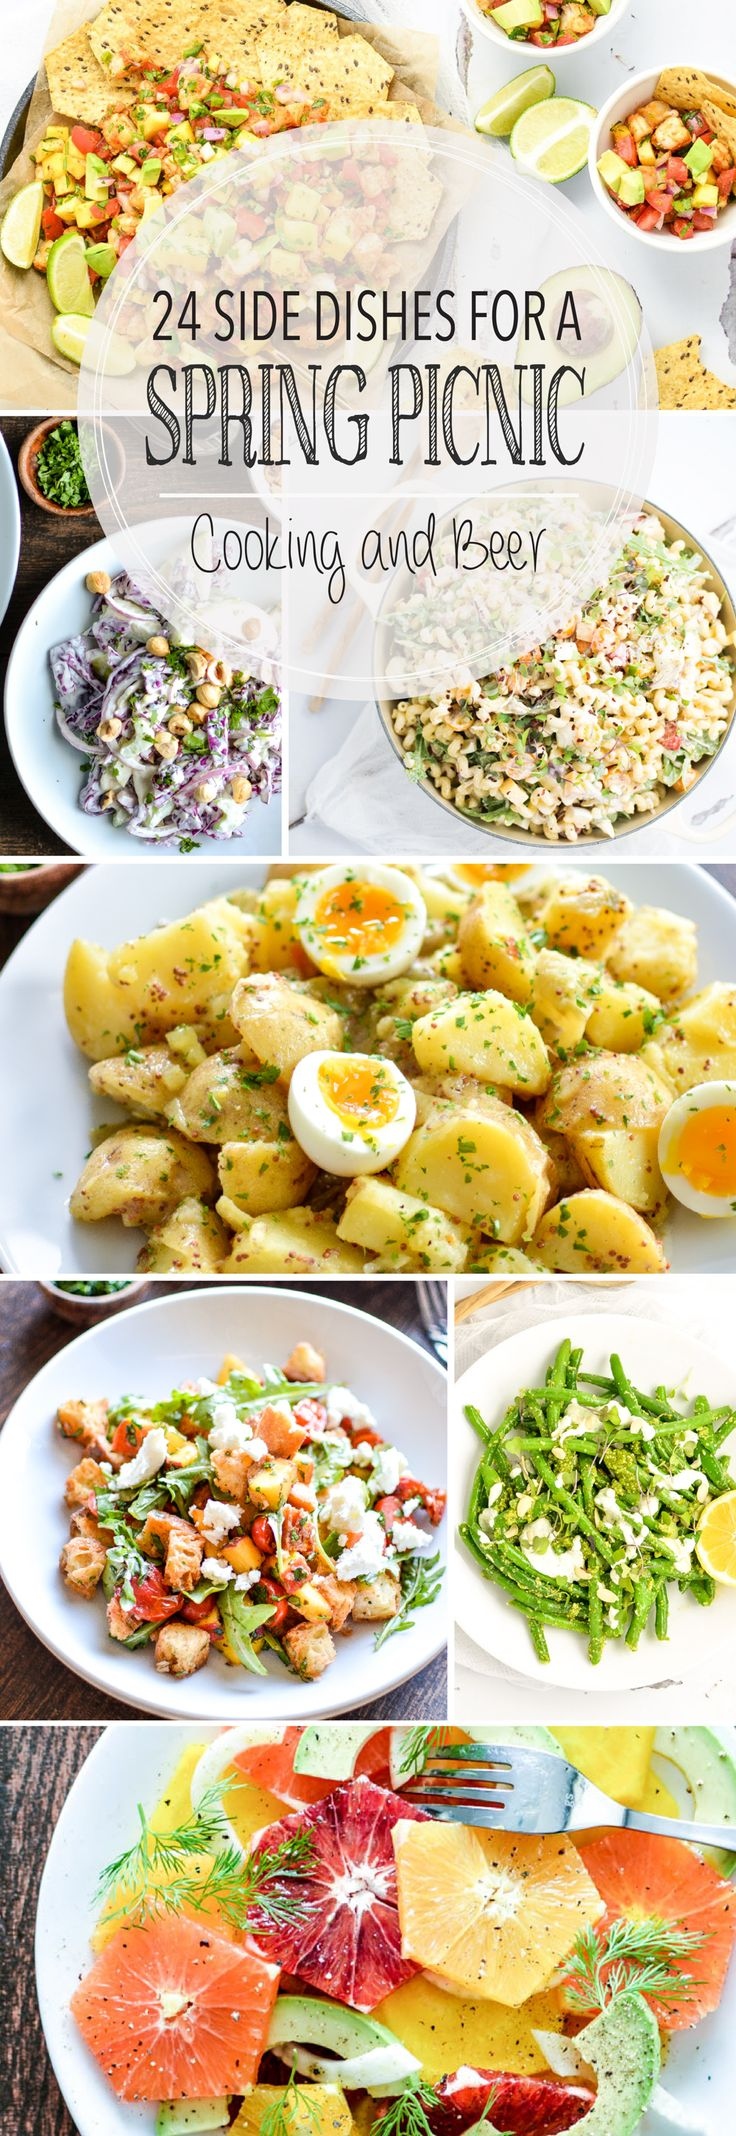 From all-veggie pasta salad to mustard potato salad and from tropical shrimp to herby chicken salad, here are 24 side dishes for a spring picnic!